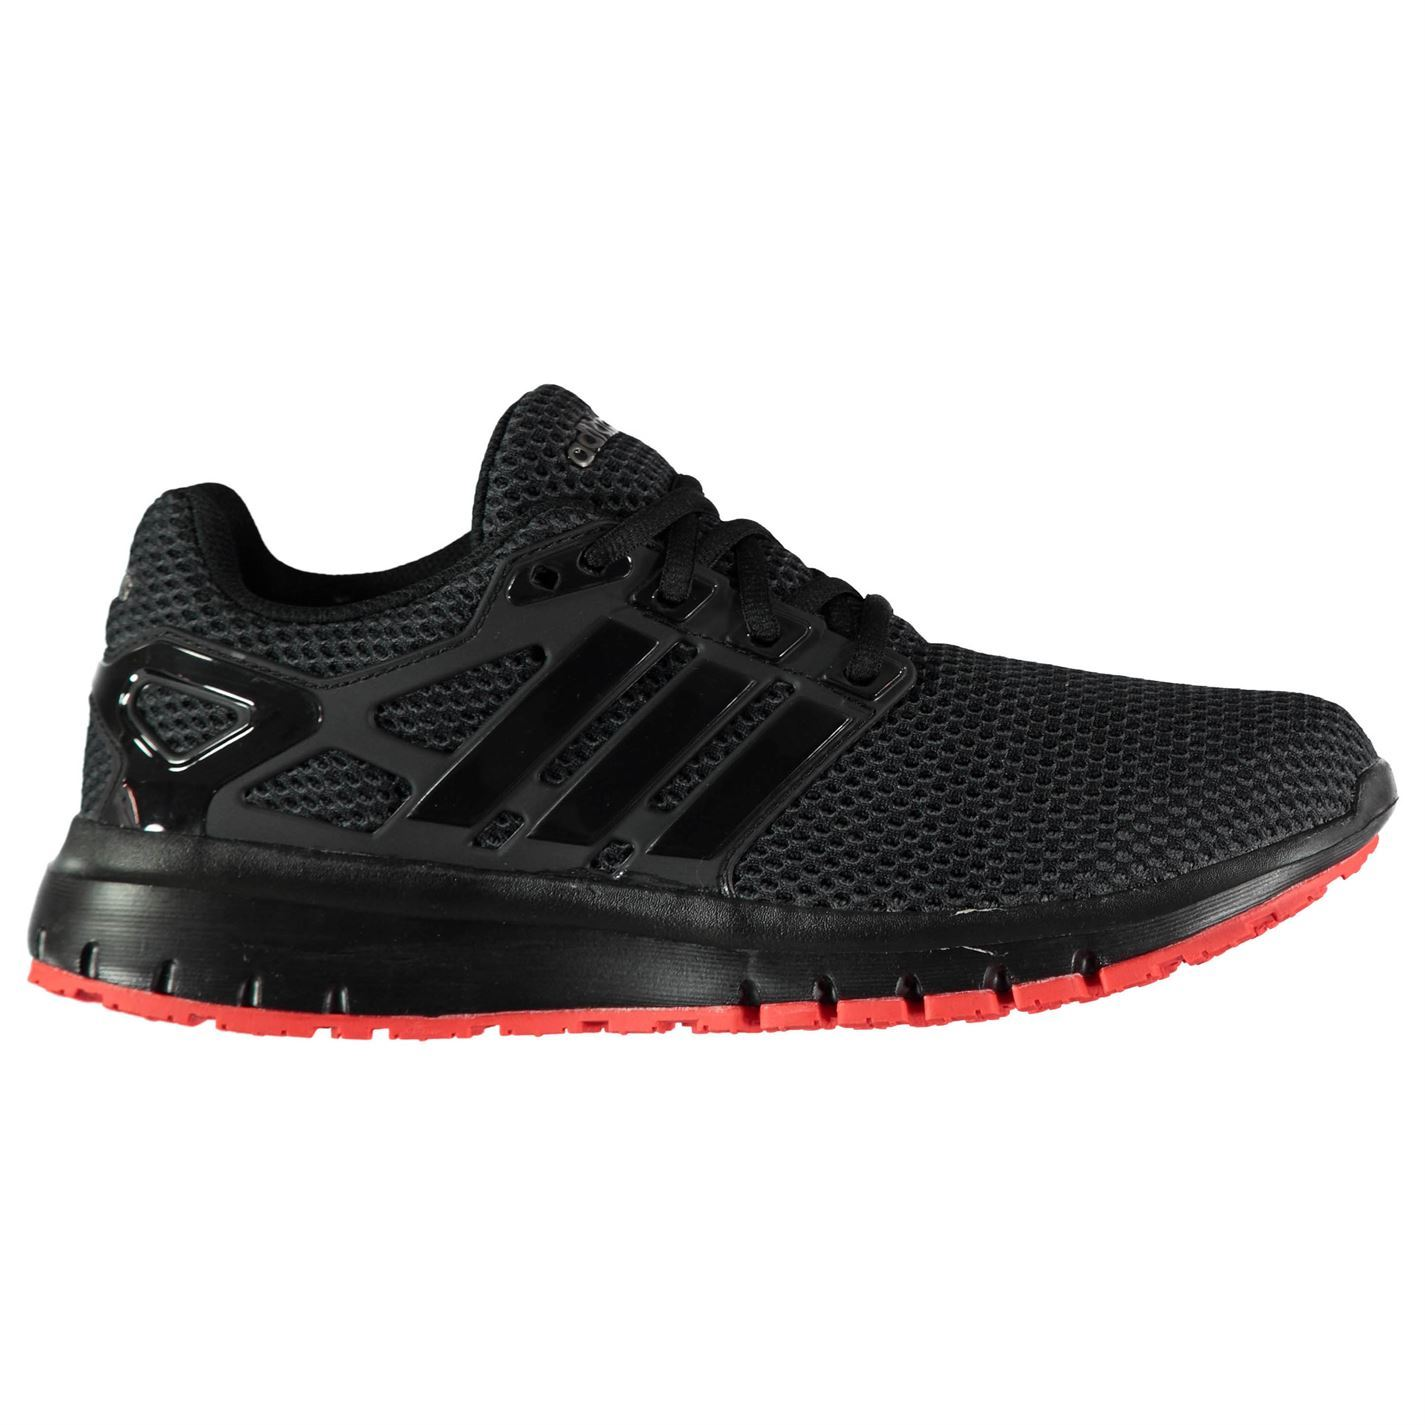 c5f5d09f5 ... adidas Energy Cloud 2 Running Shoes Mens Black/Red Jogging Trainers  Sneakers ...